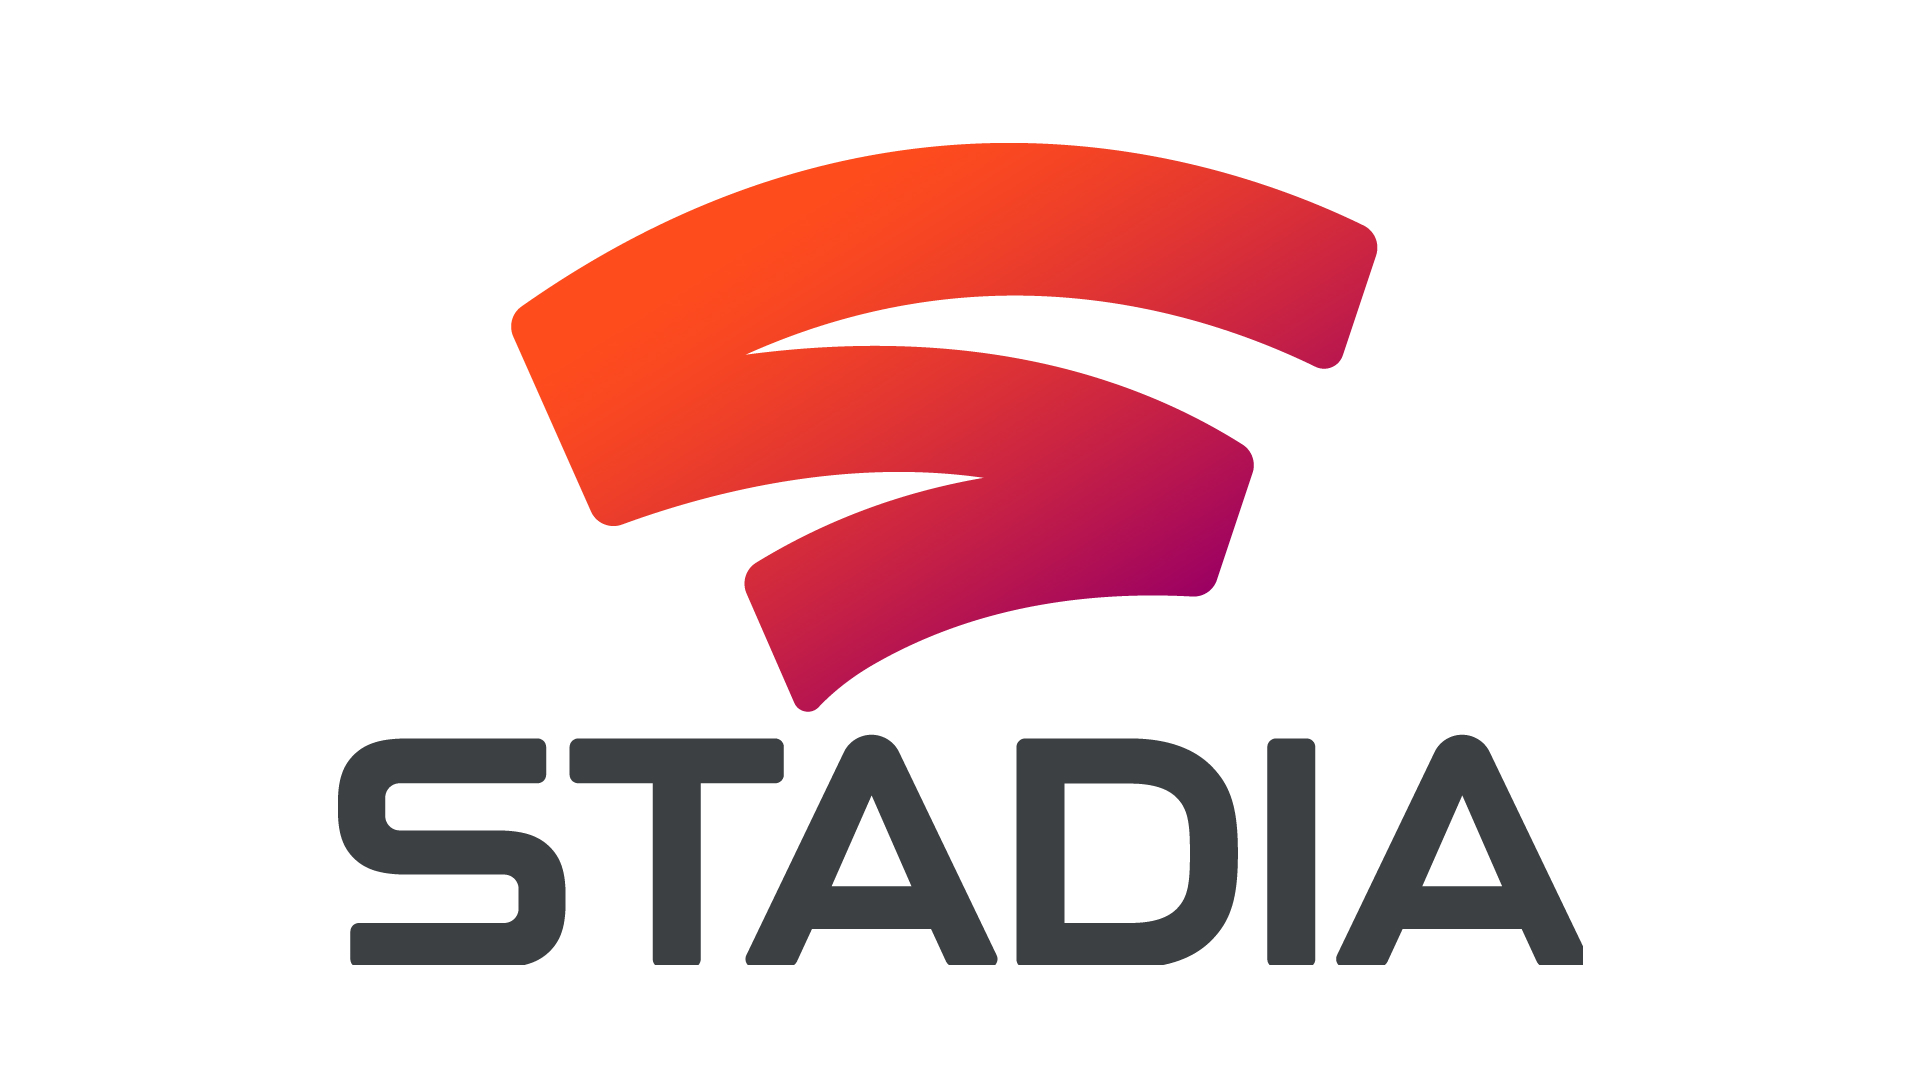 Google Stadia Requires 35 Mbps Bandwidth for 4K HDR/60 FPS Gameplay